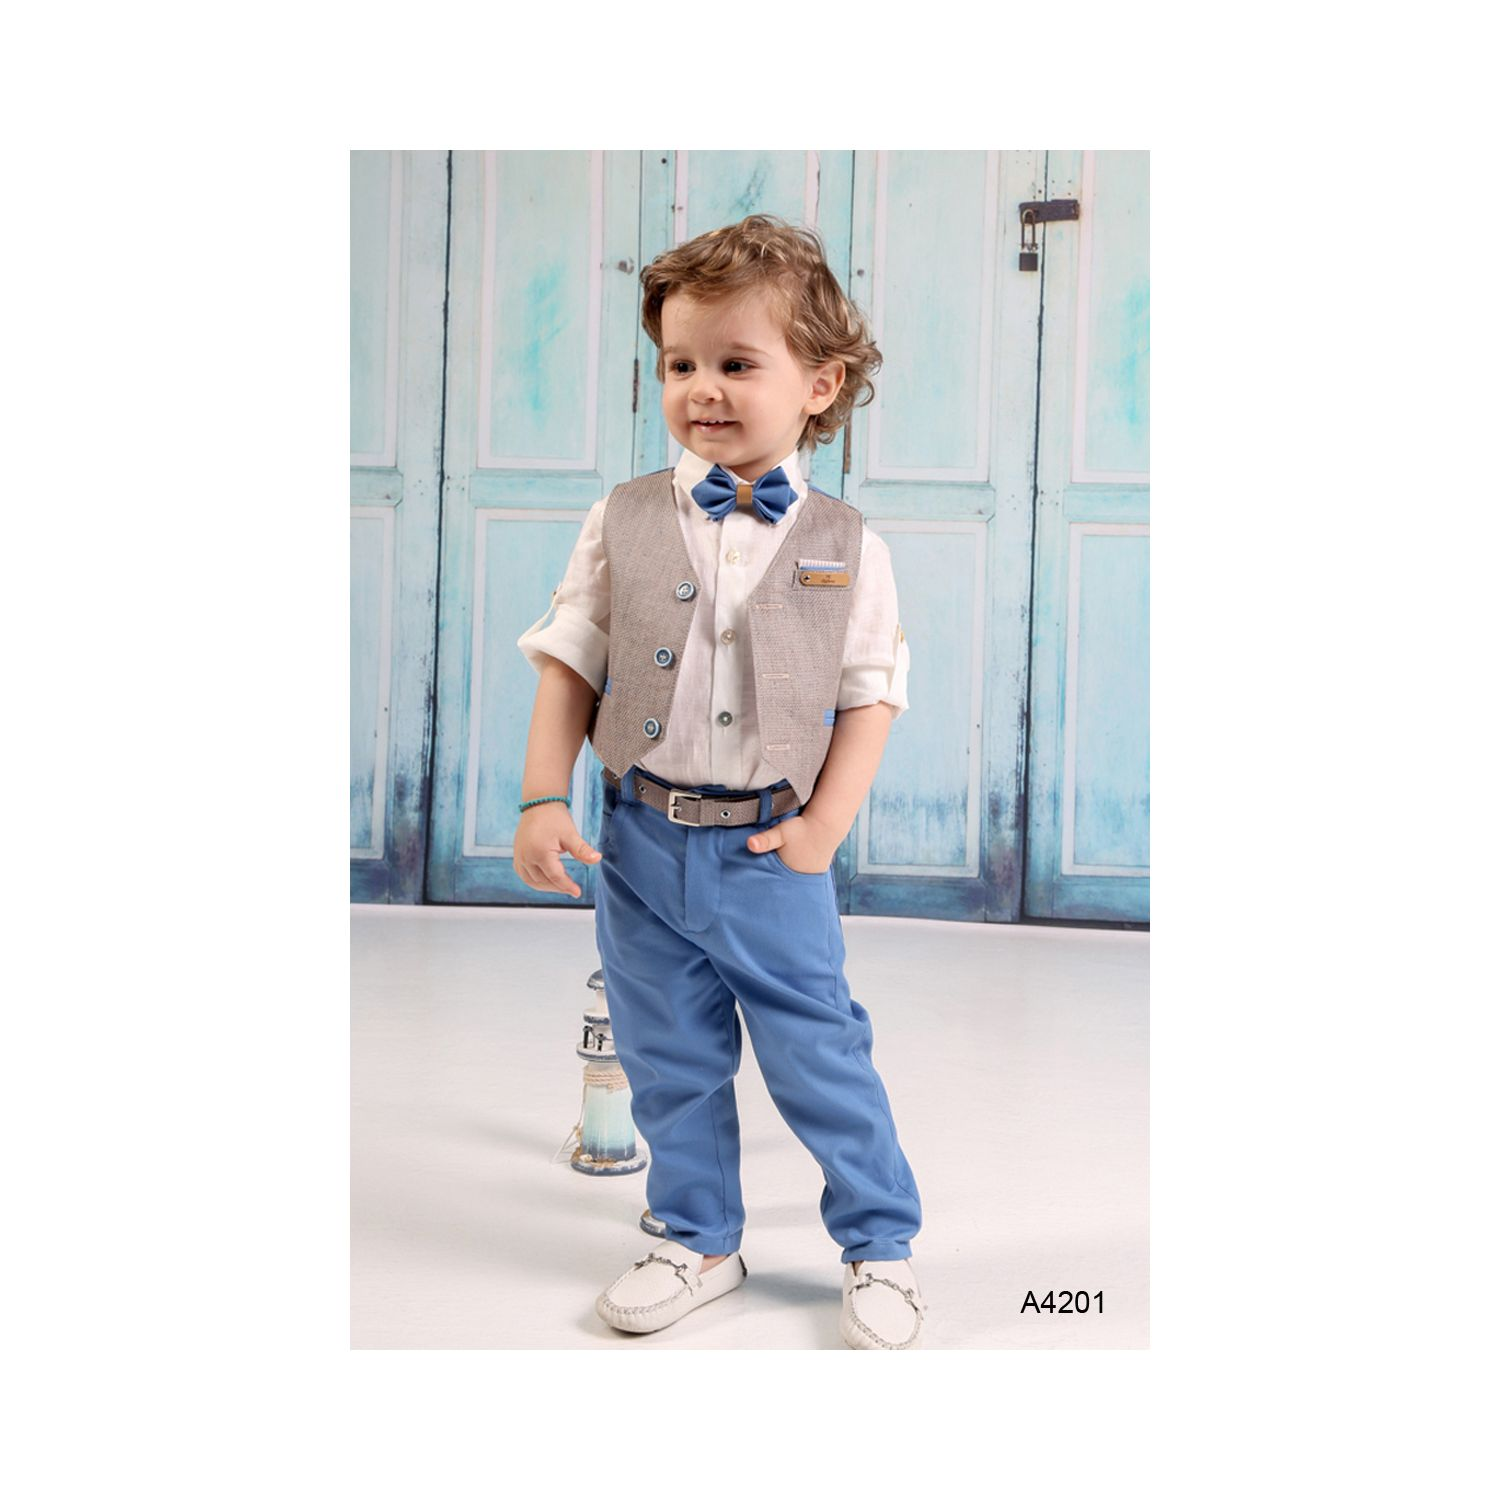 Modern Christening clothes for summer baptism A4201